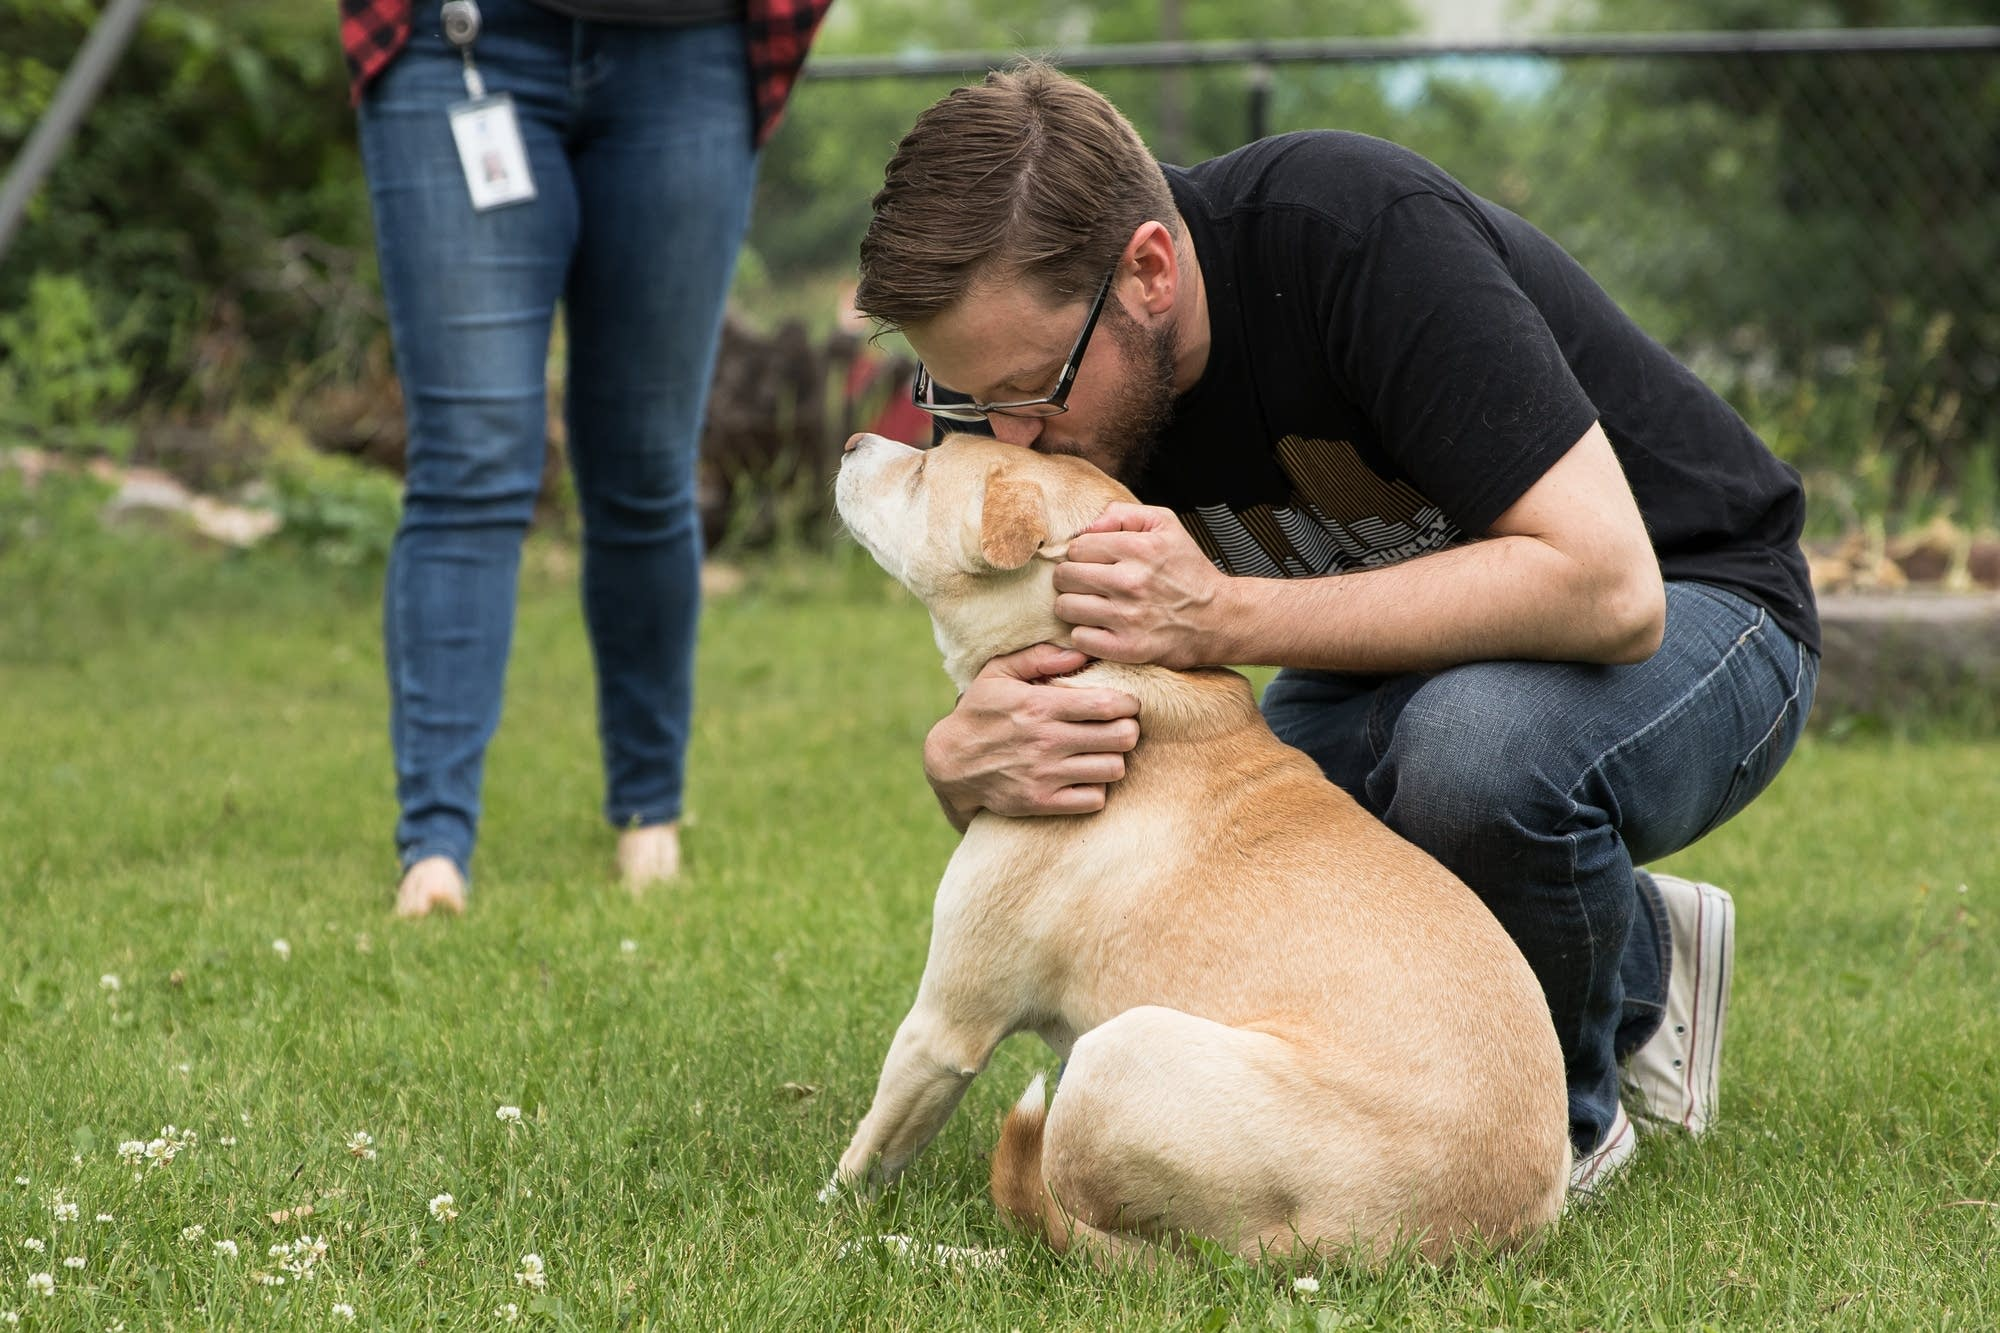 Mike Liay kisses his dog Archie's head in his backyard.